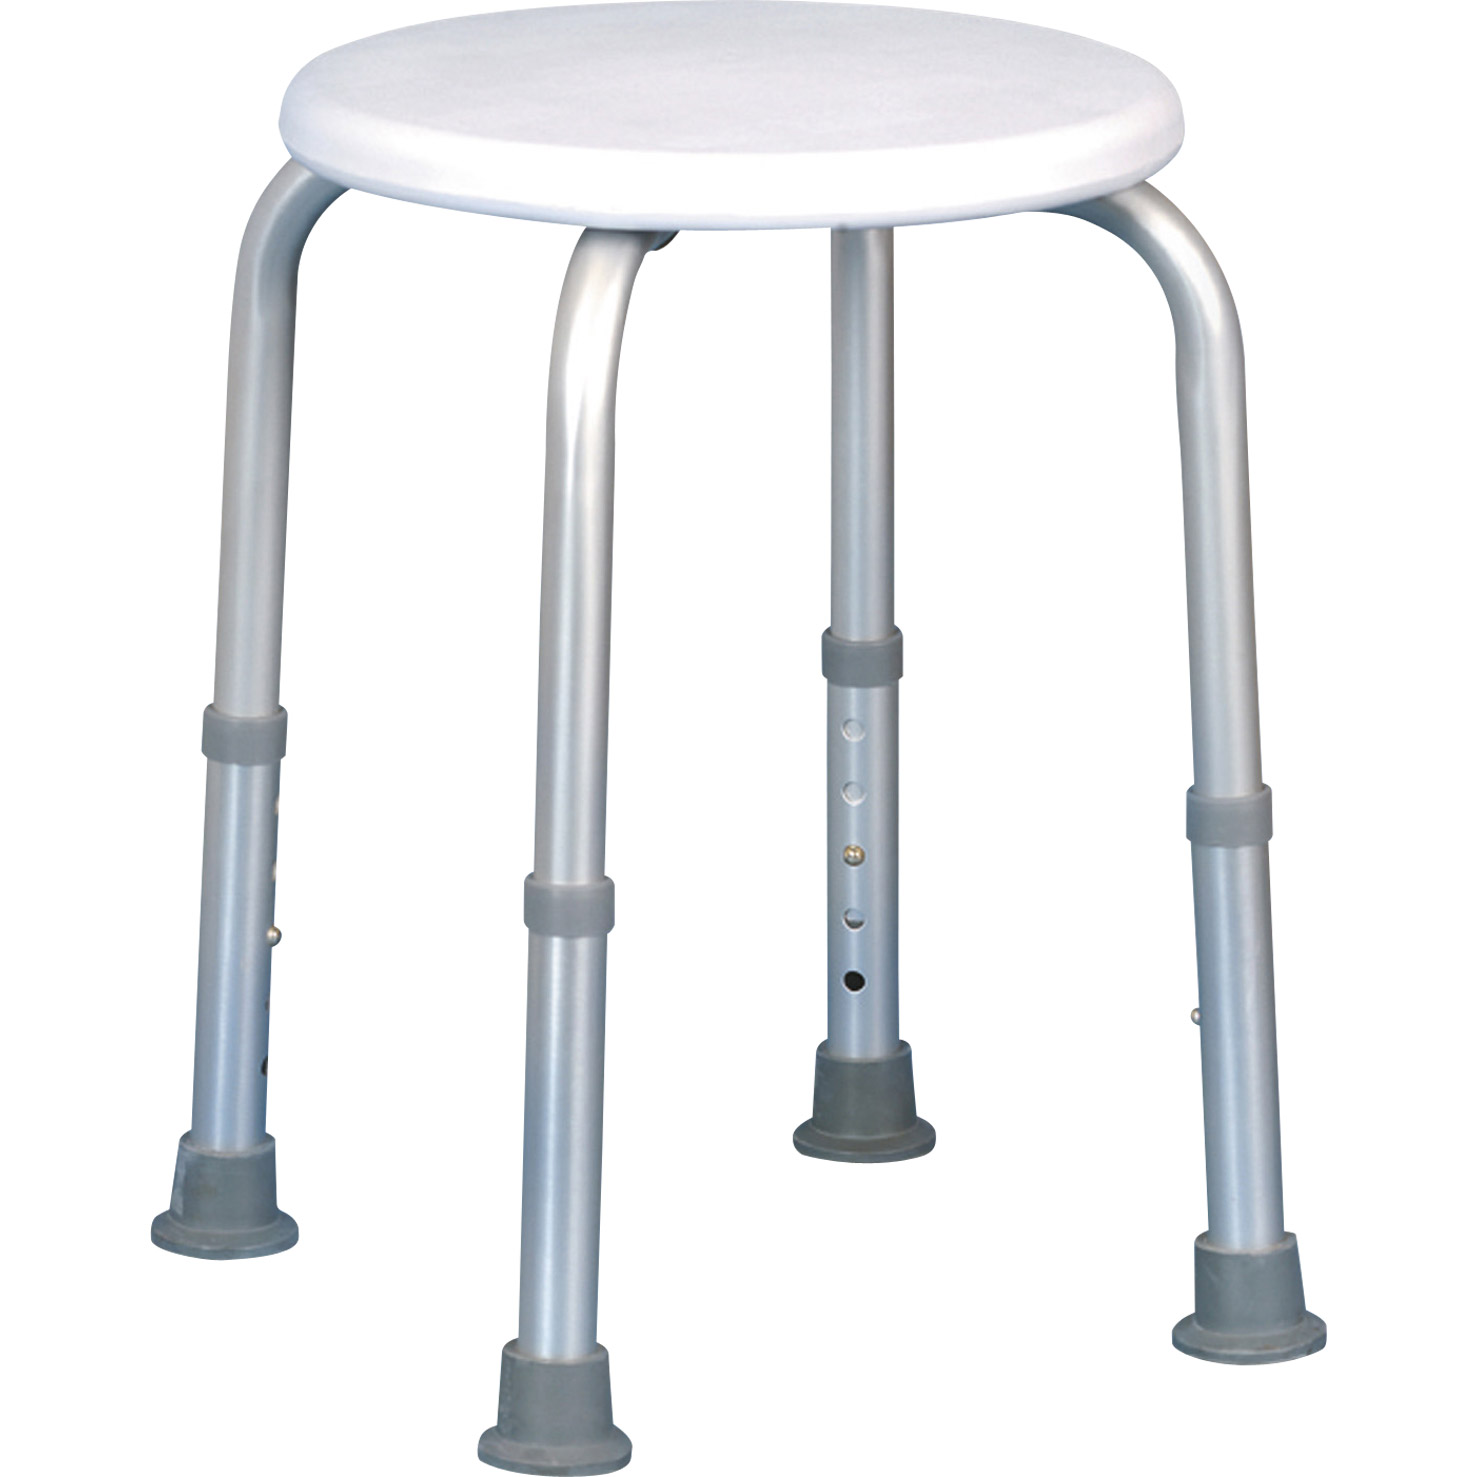 Tabouret de douche reglable for Douche chez leroy merlin